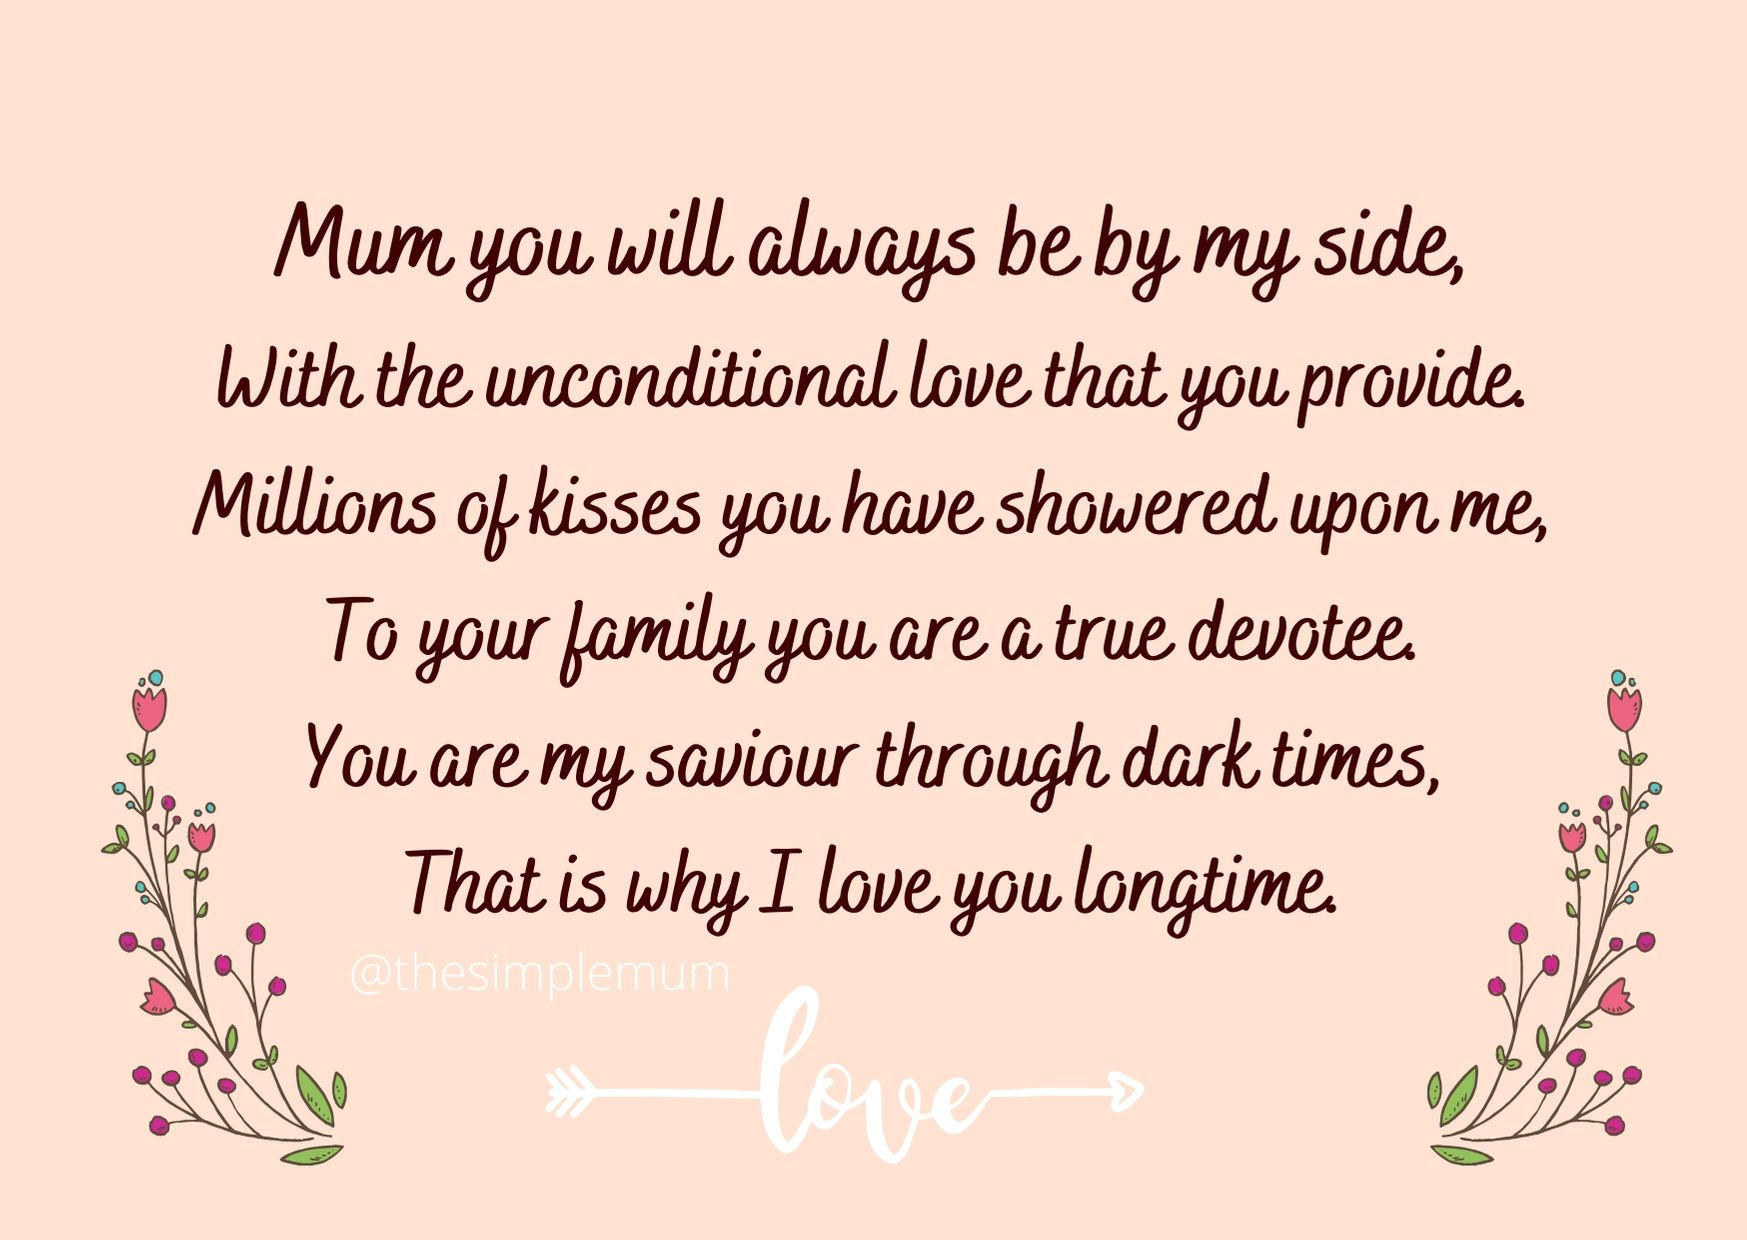 A Poem For An Amazing Mum Cheryl Lee White 10 of the best funny mothers day poems to write in a card. a poem for an amazing mum cheryl lee